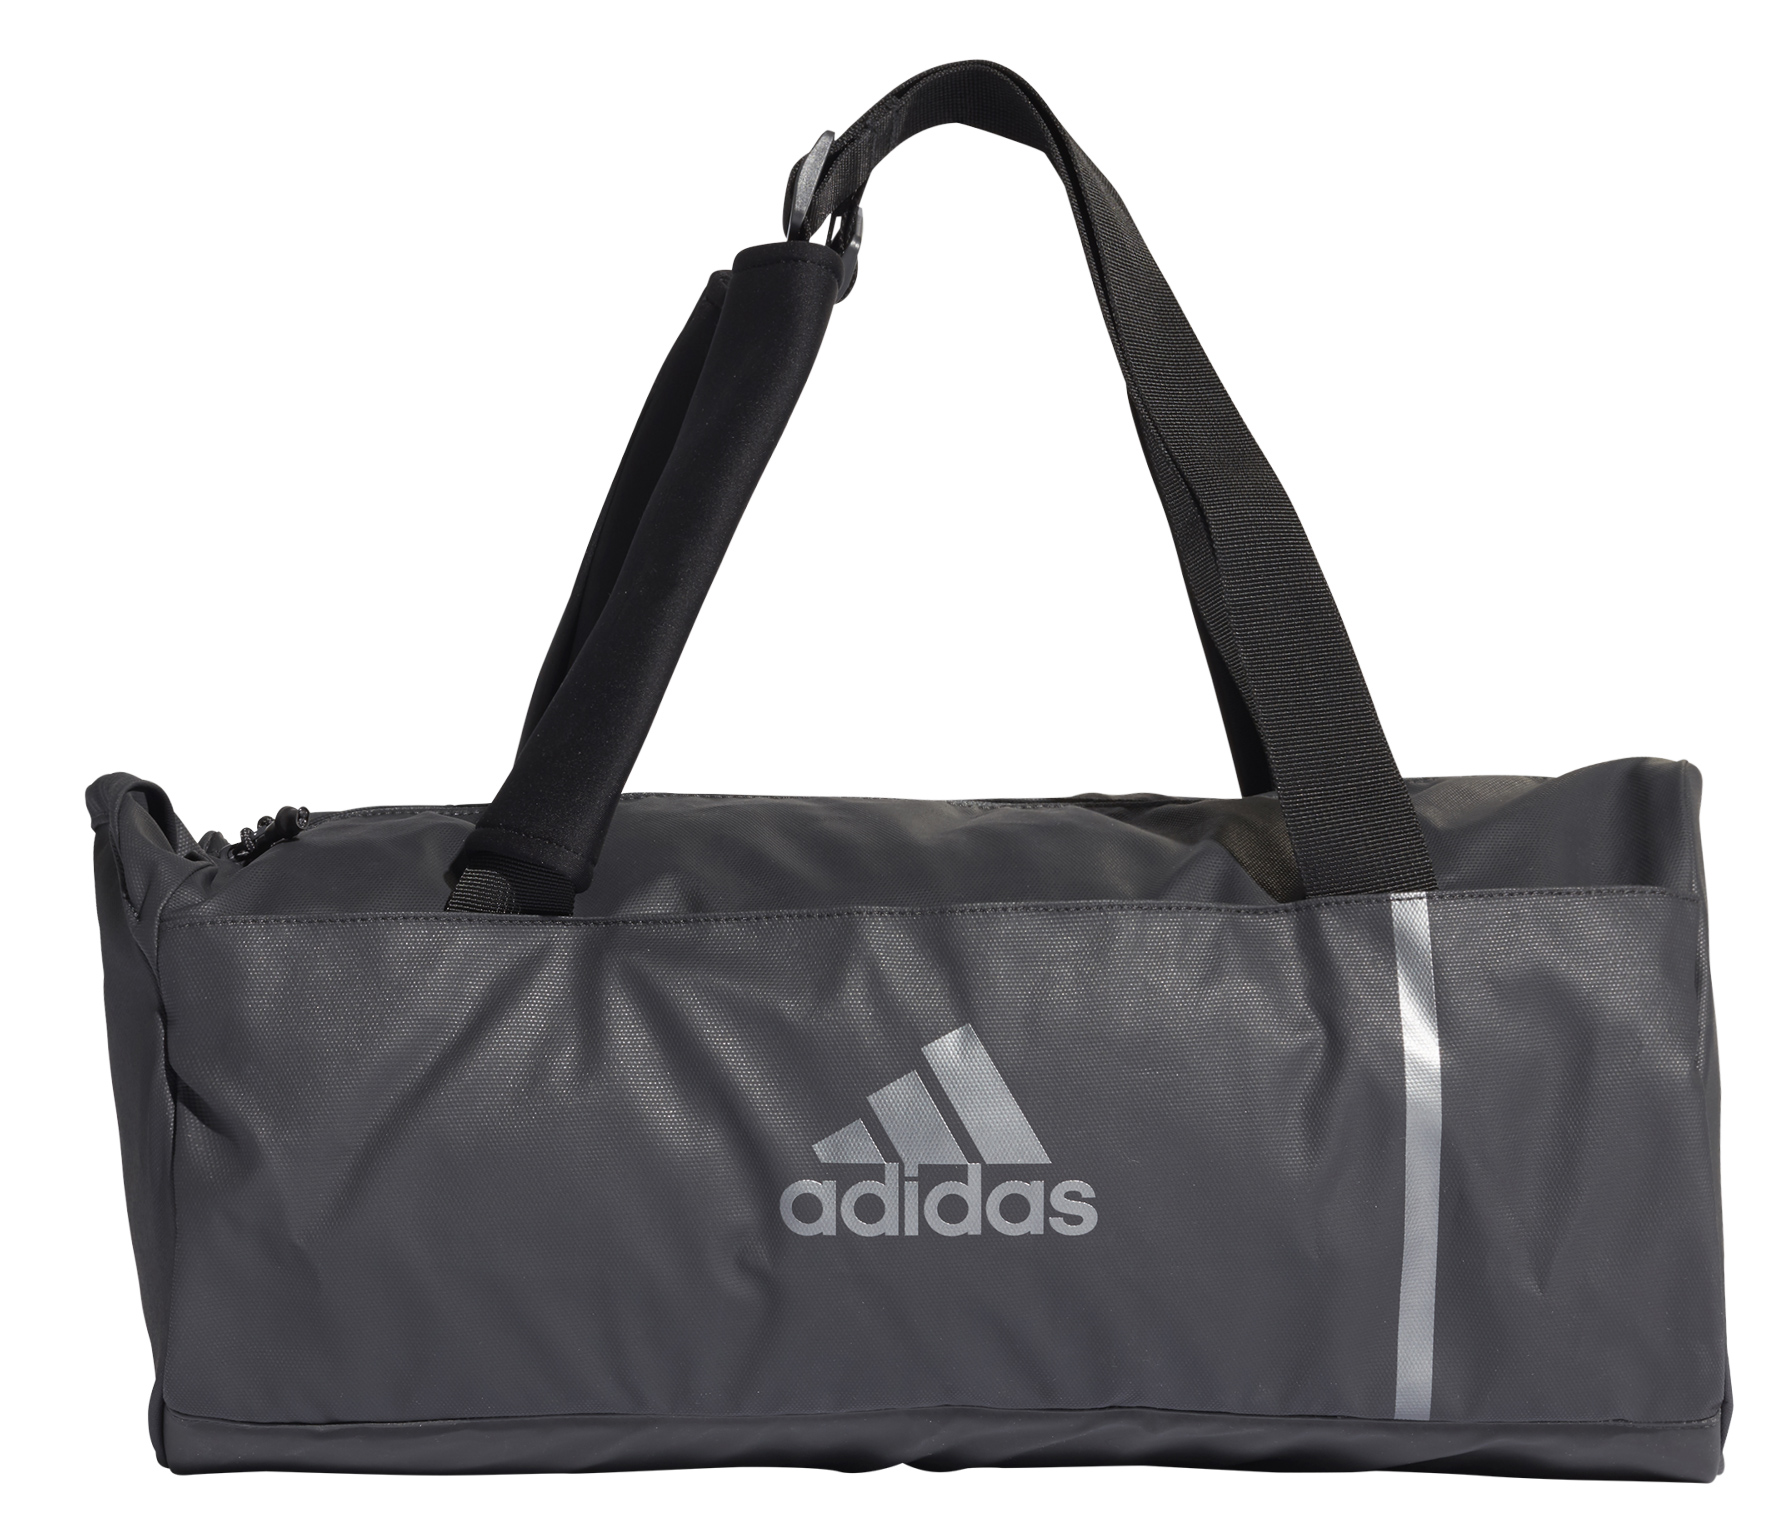 adidas-convertible-training-duffelbag-s-tasche-farbe-carbon-night-metallic-night-metallic-